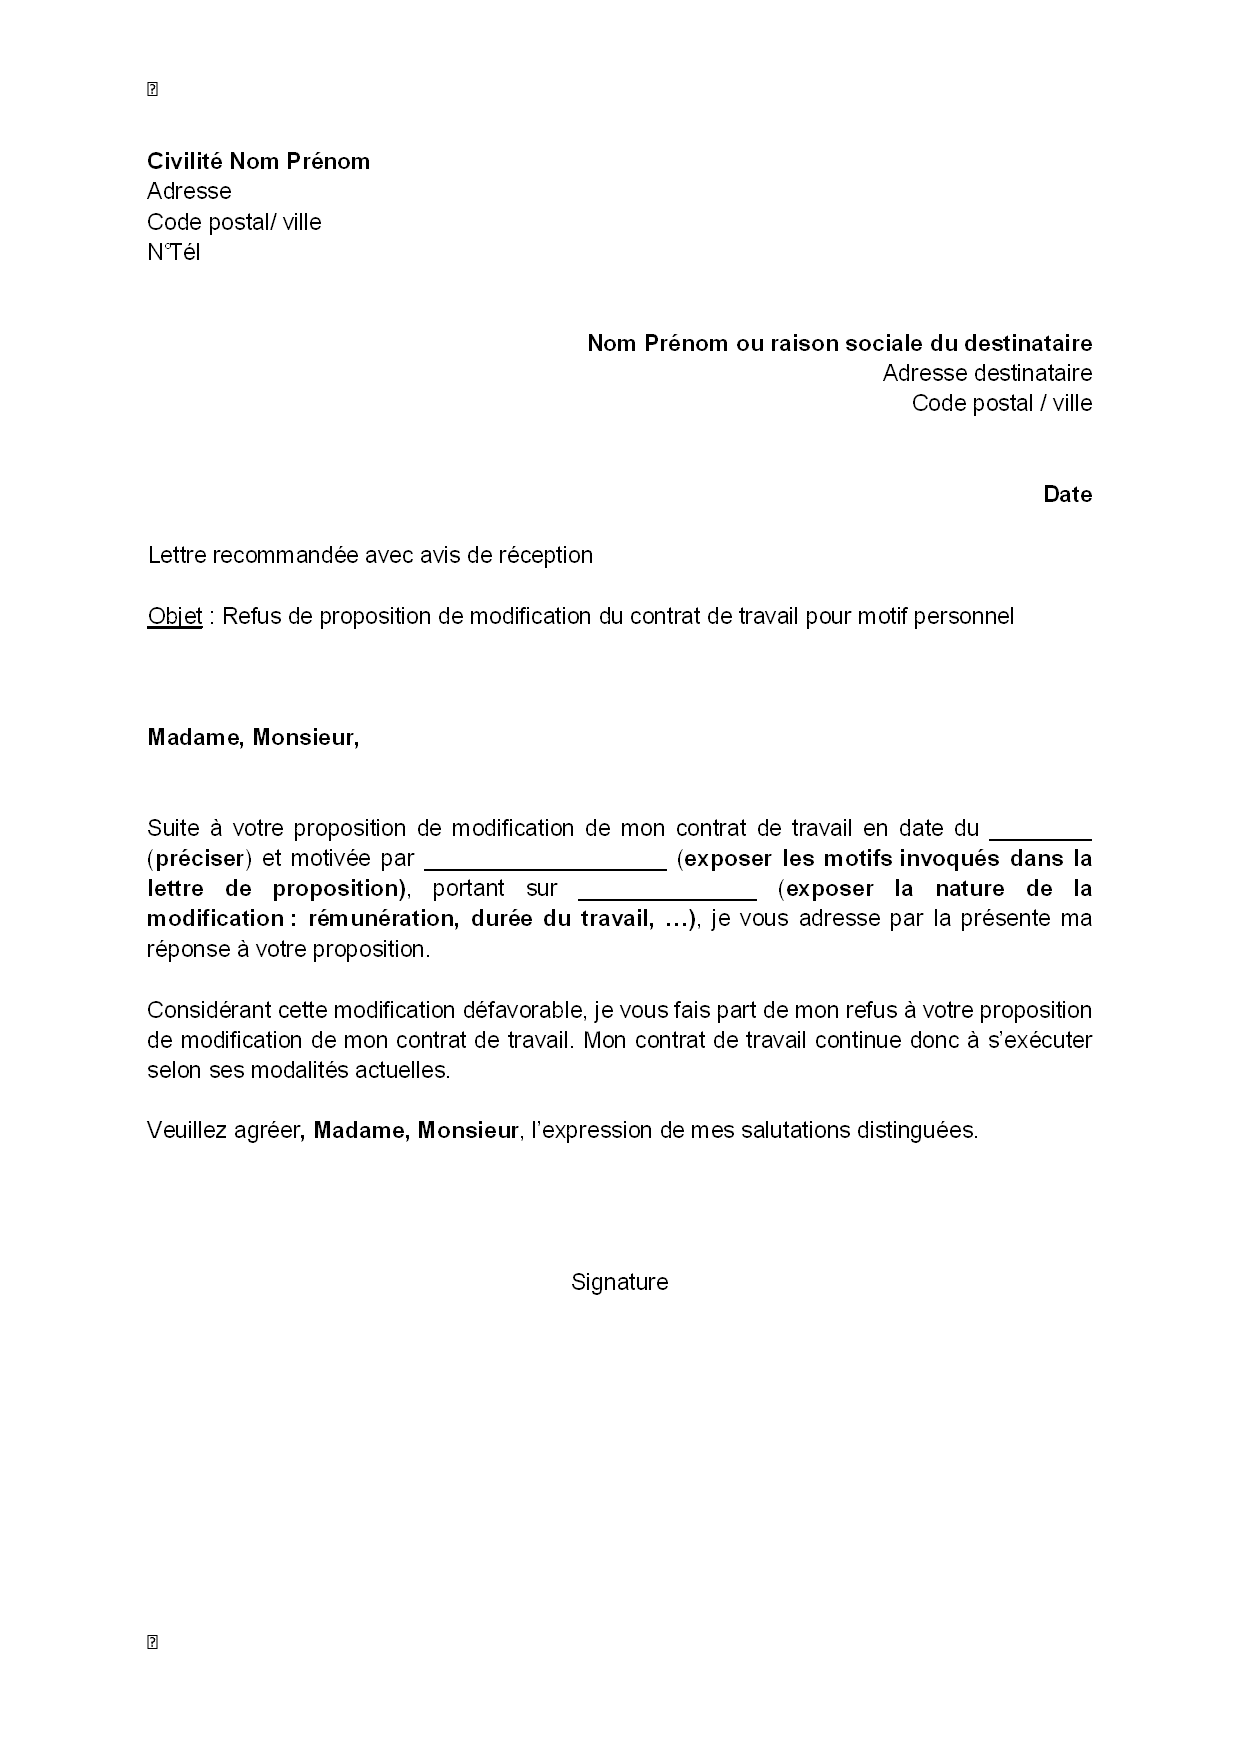 Exemple Courrier Type Modele Lettre Rupture Conventionnelle Artere